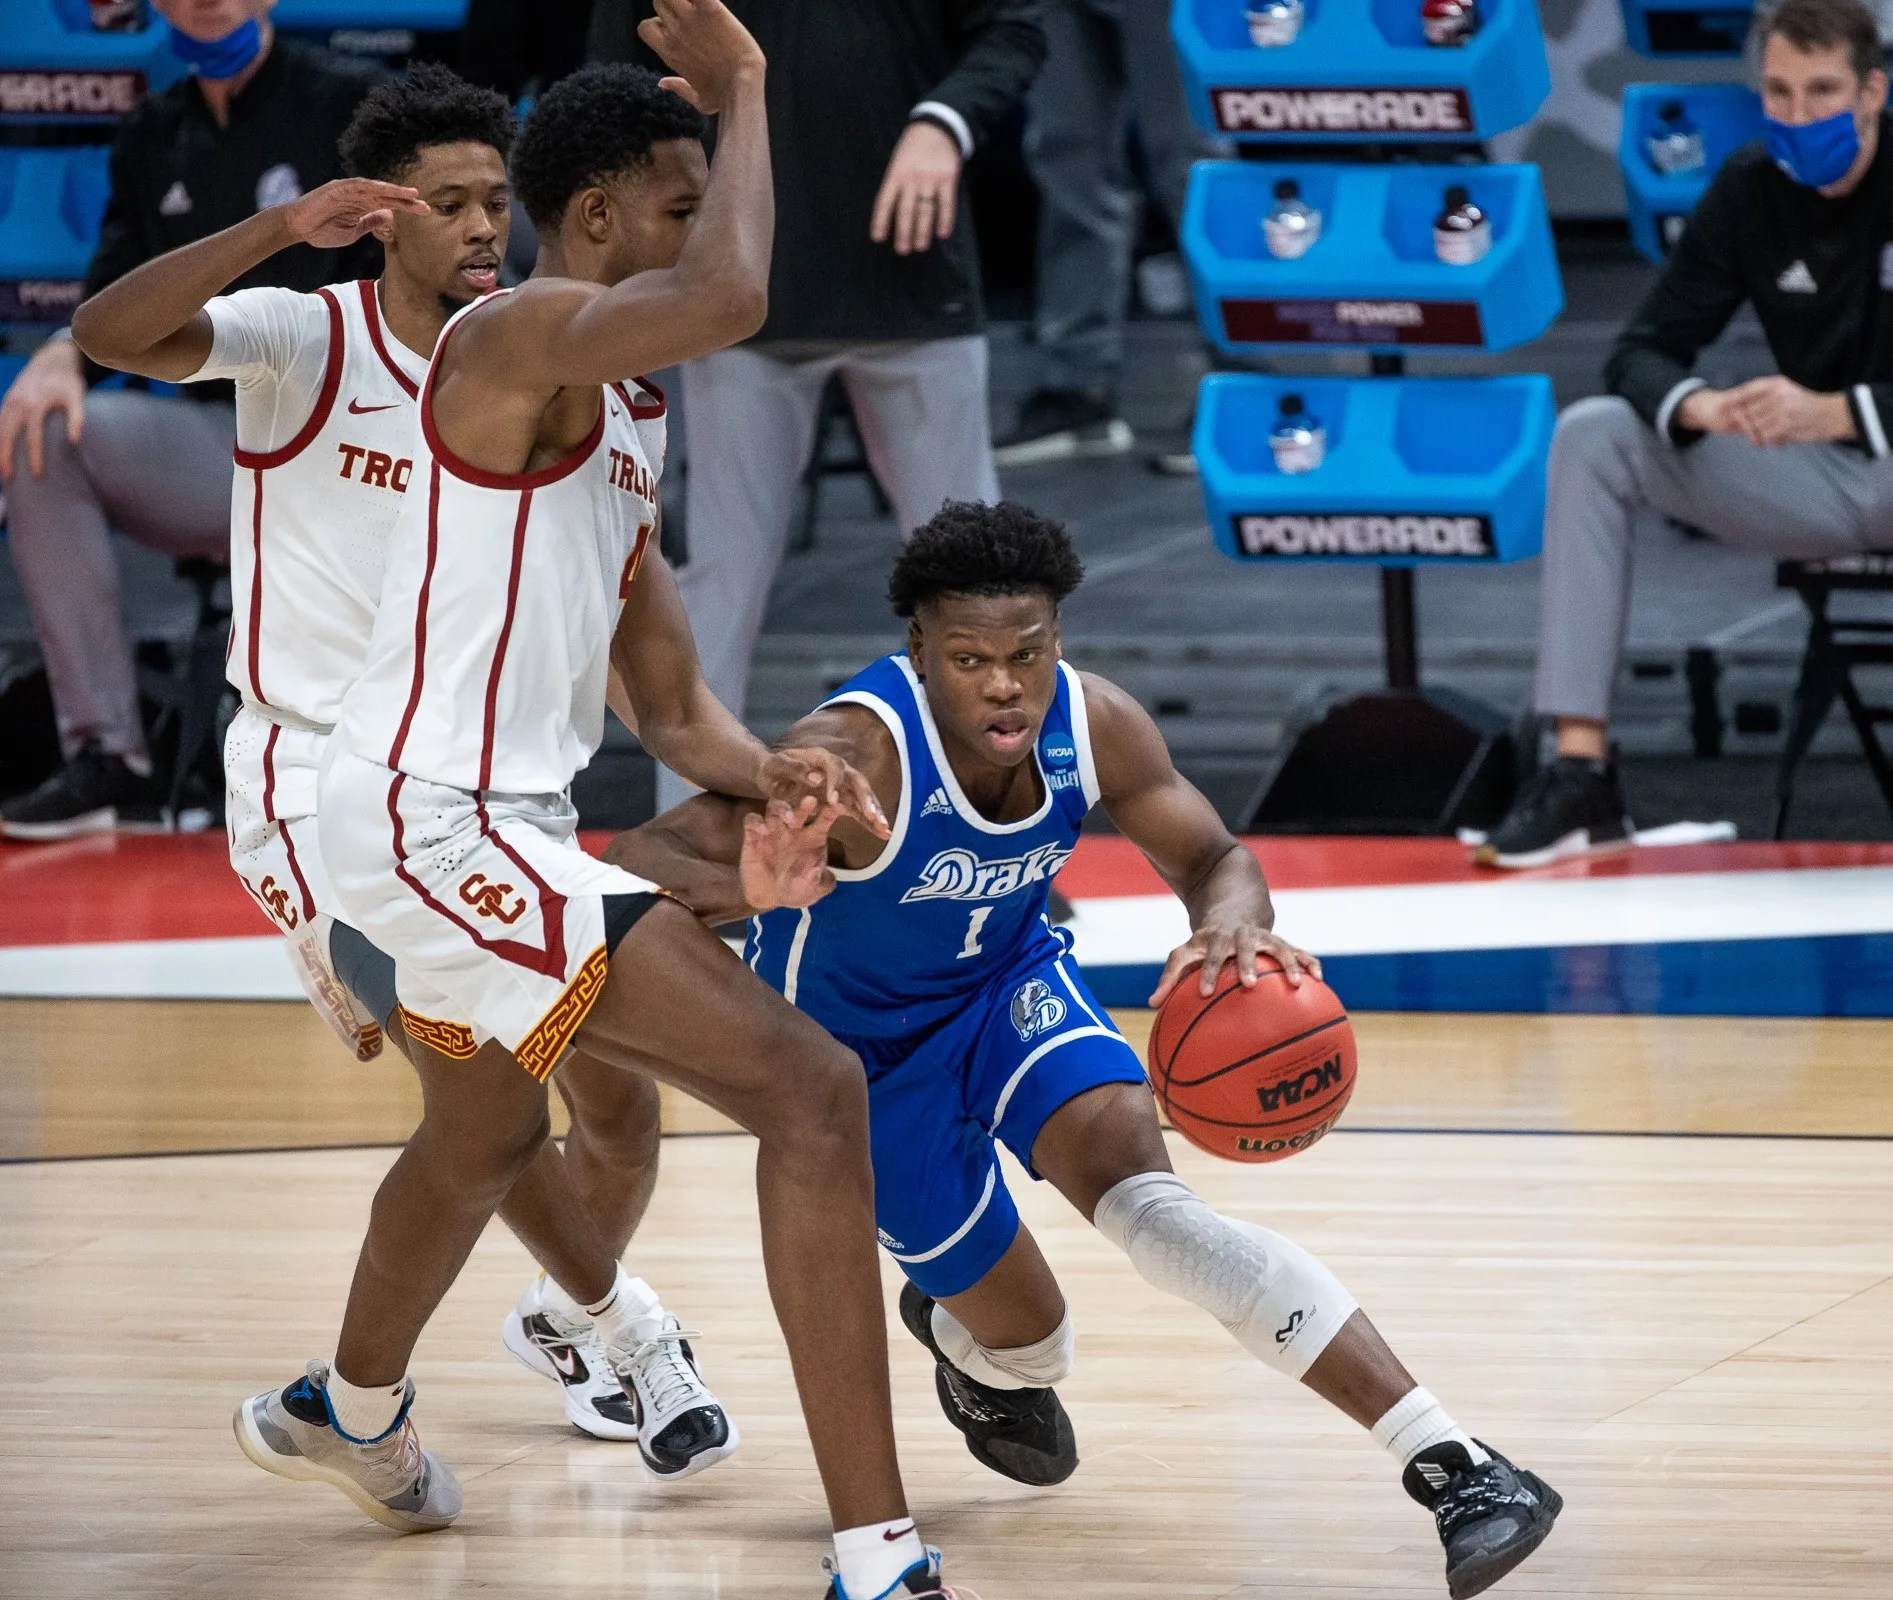 Kansas guard Joseph Yesufu (1), a transfer from Drake, drives on USC forward Evan Mobley (4) during the first round of the 2021 NCAA Tournament .